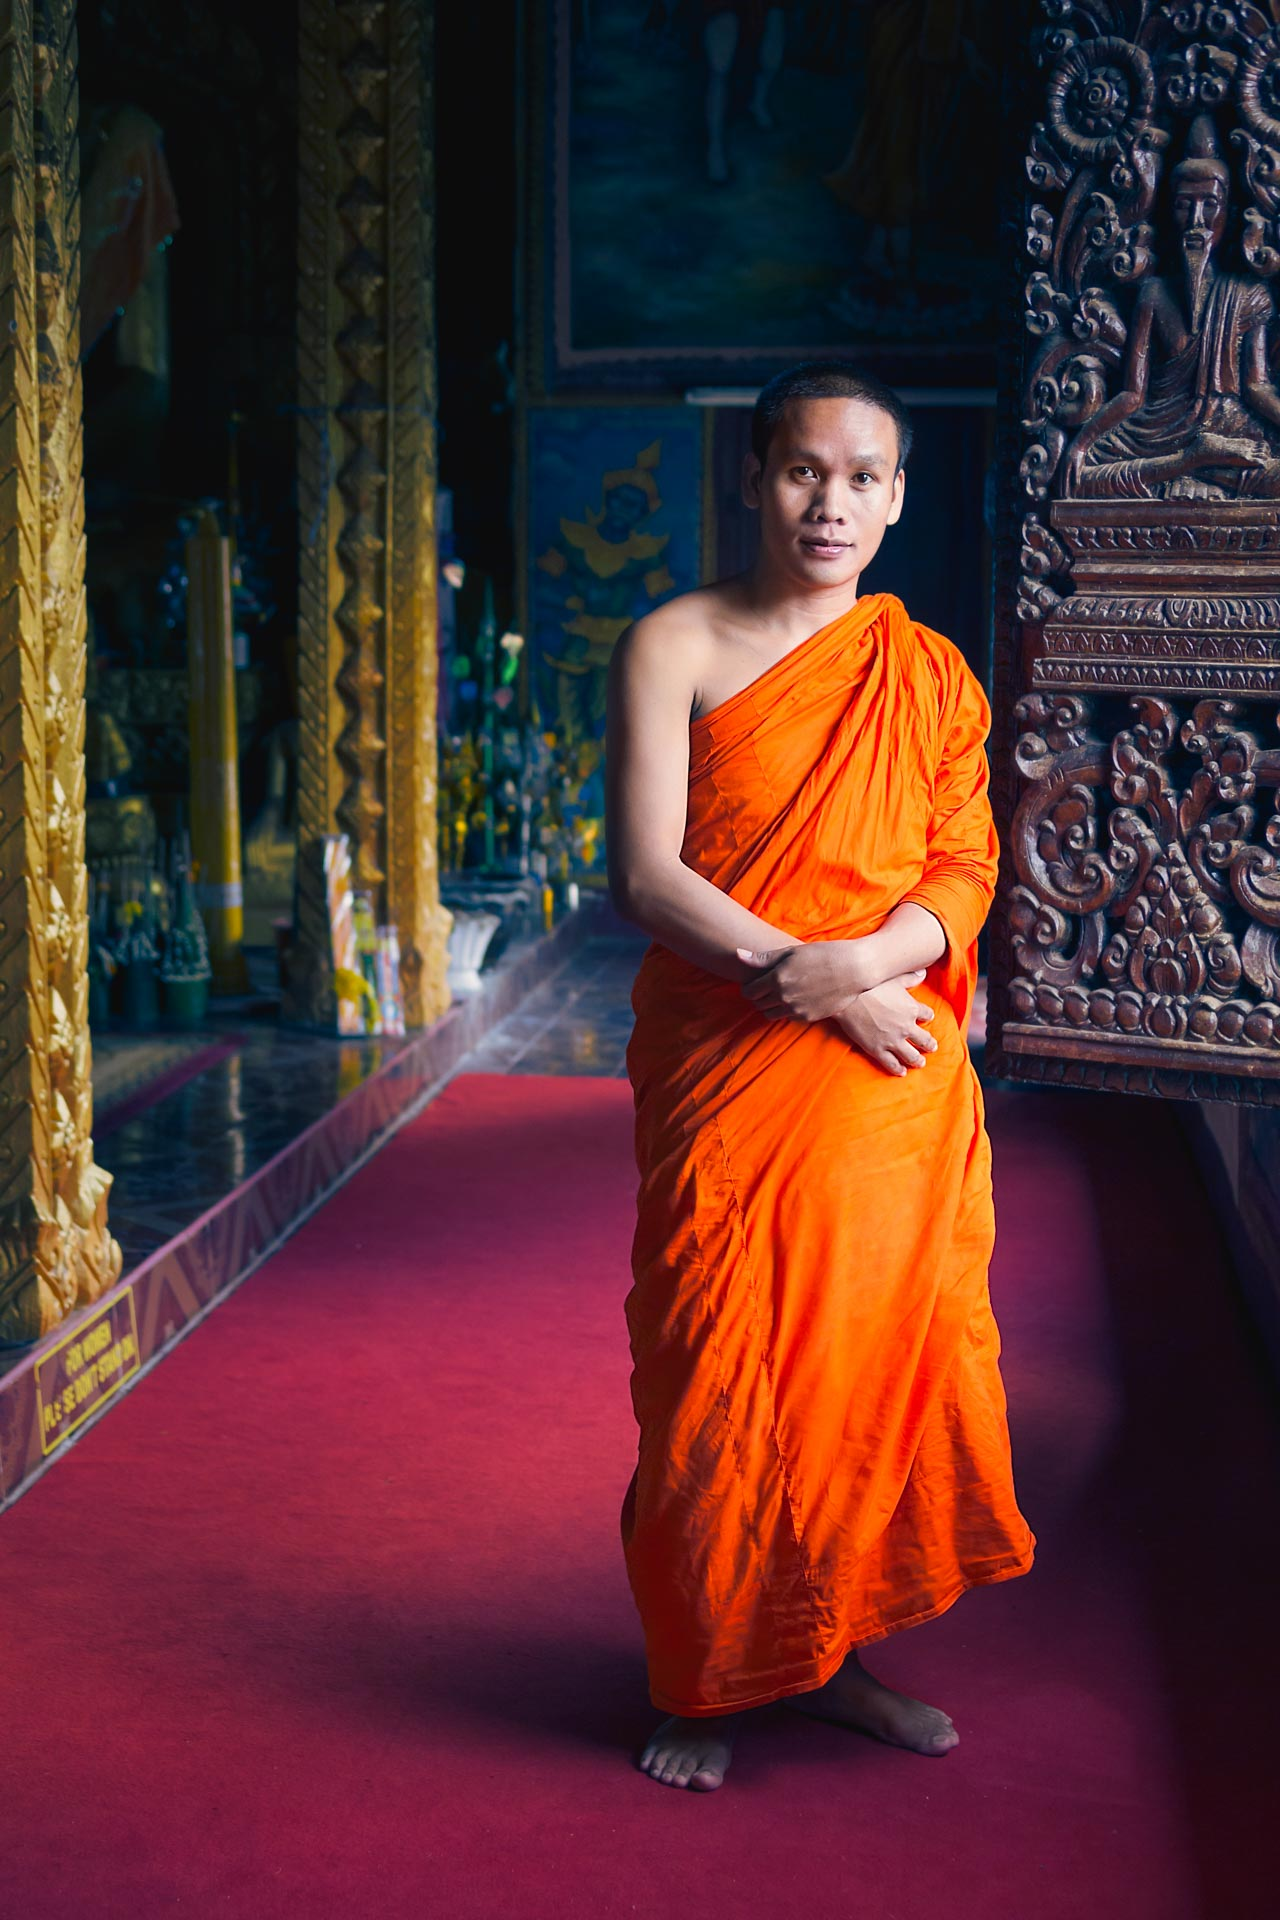 Buddhist monk at a temple in Pakse. Laos